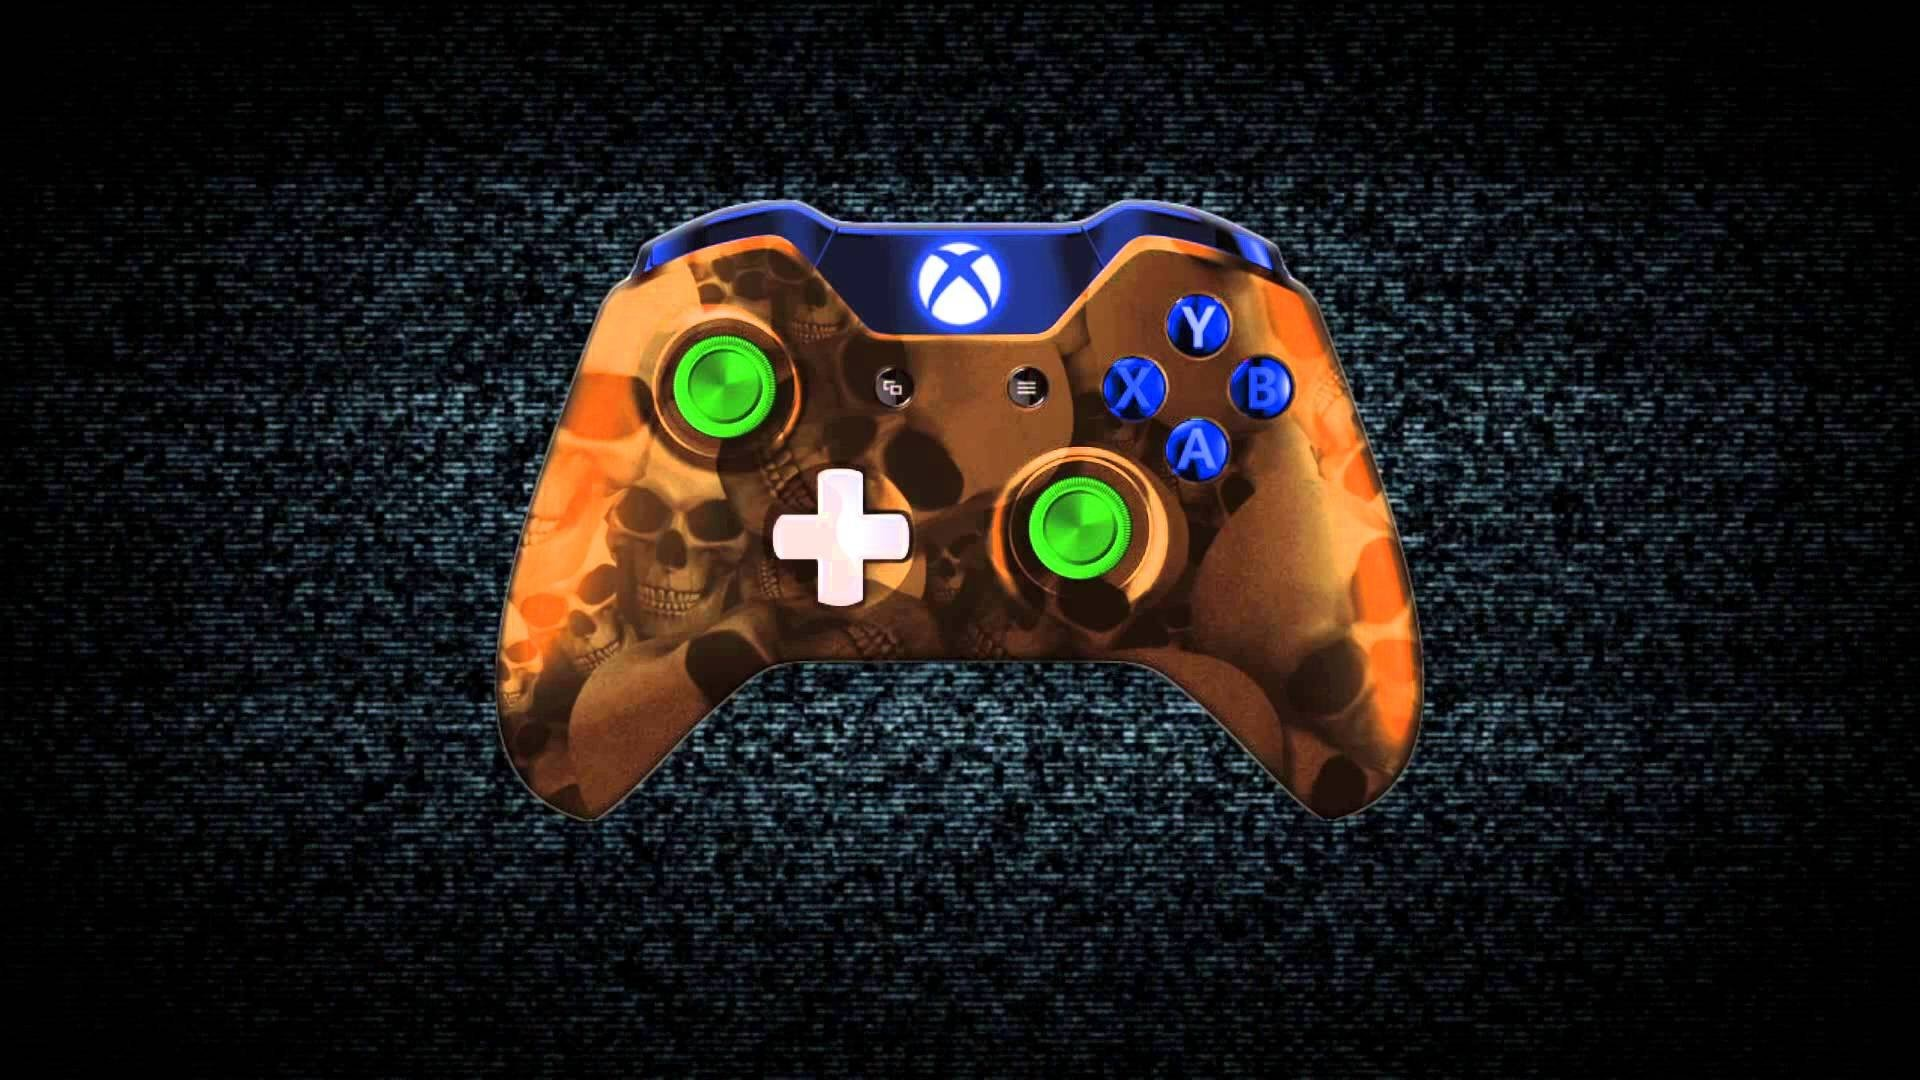 88 Download free xbox live gamer pictures